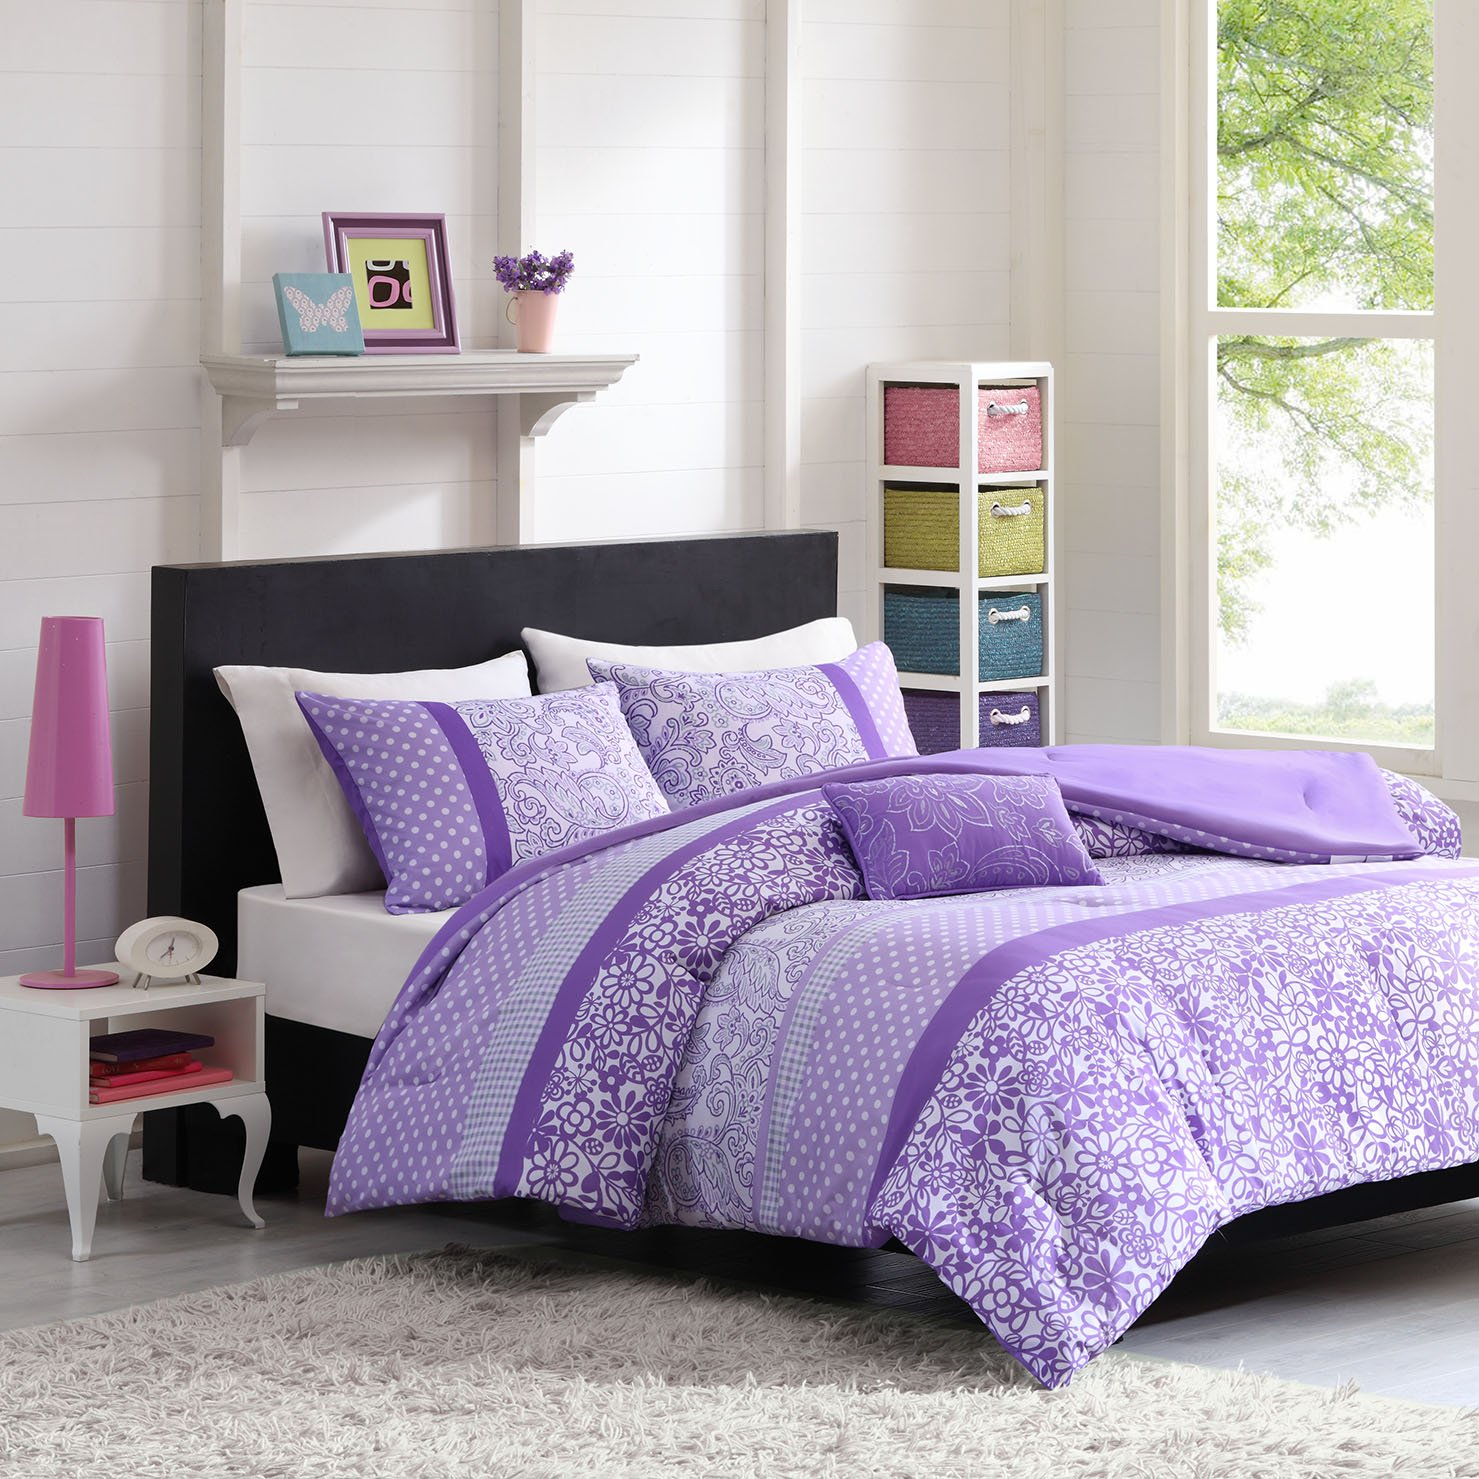 lilac bed bernard latitude bath pdx piece set comforter wayfair run reviews